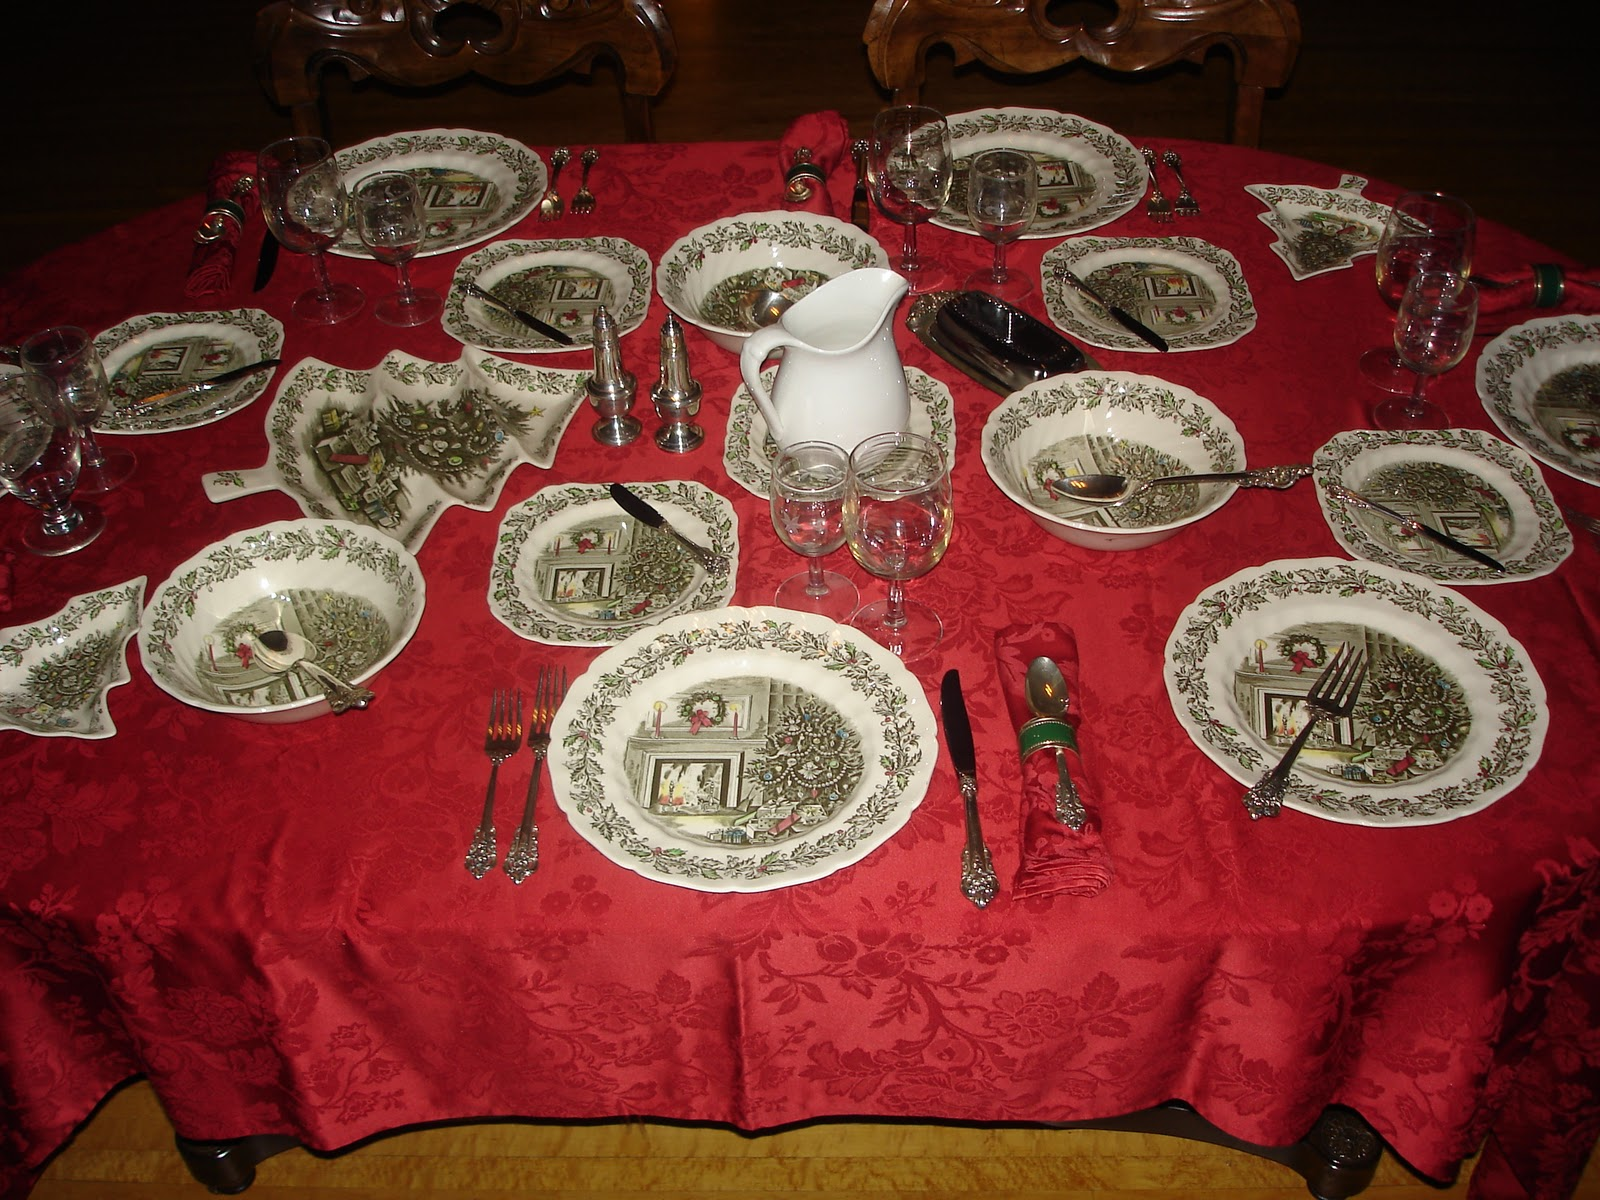 Preserving Food Traditions: Christmas Tablecloths